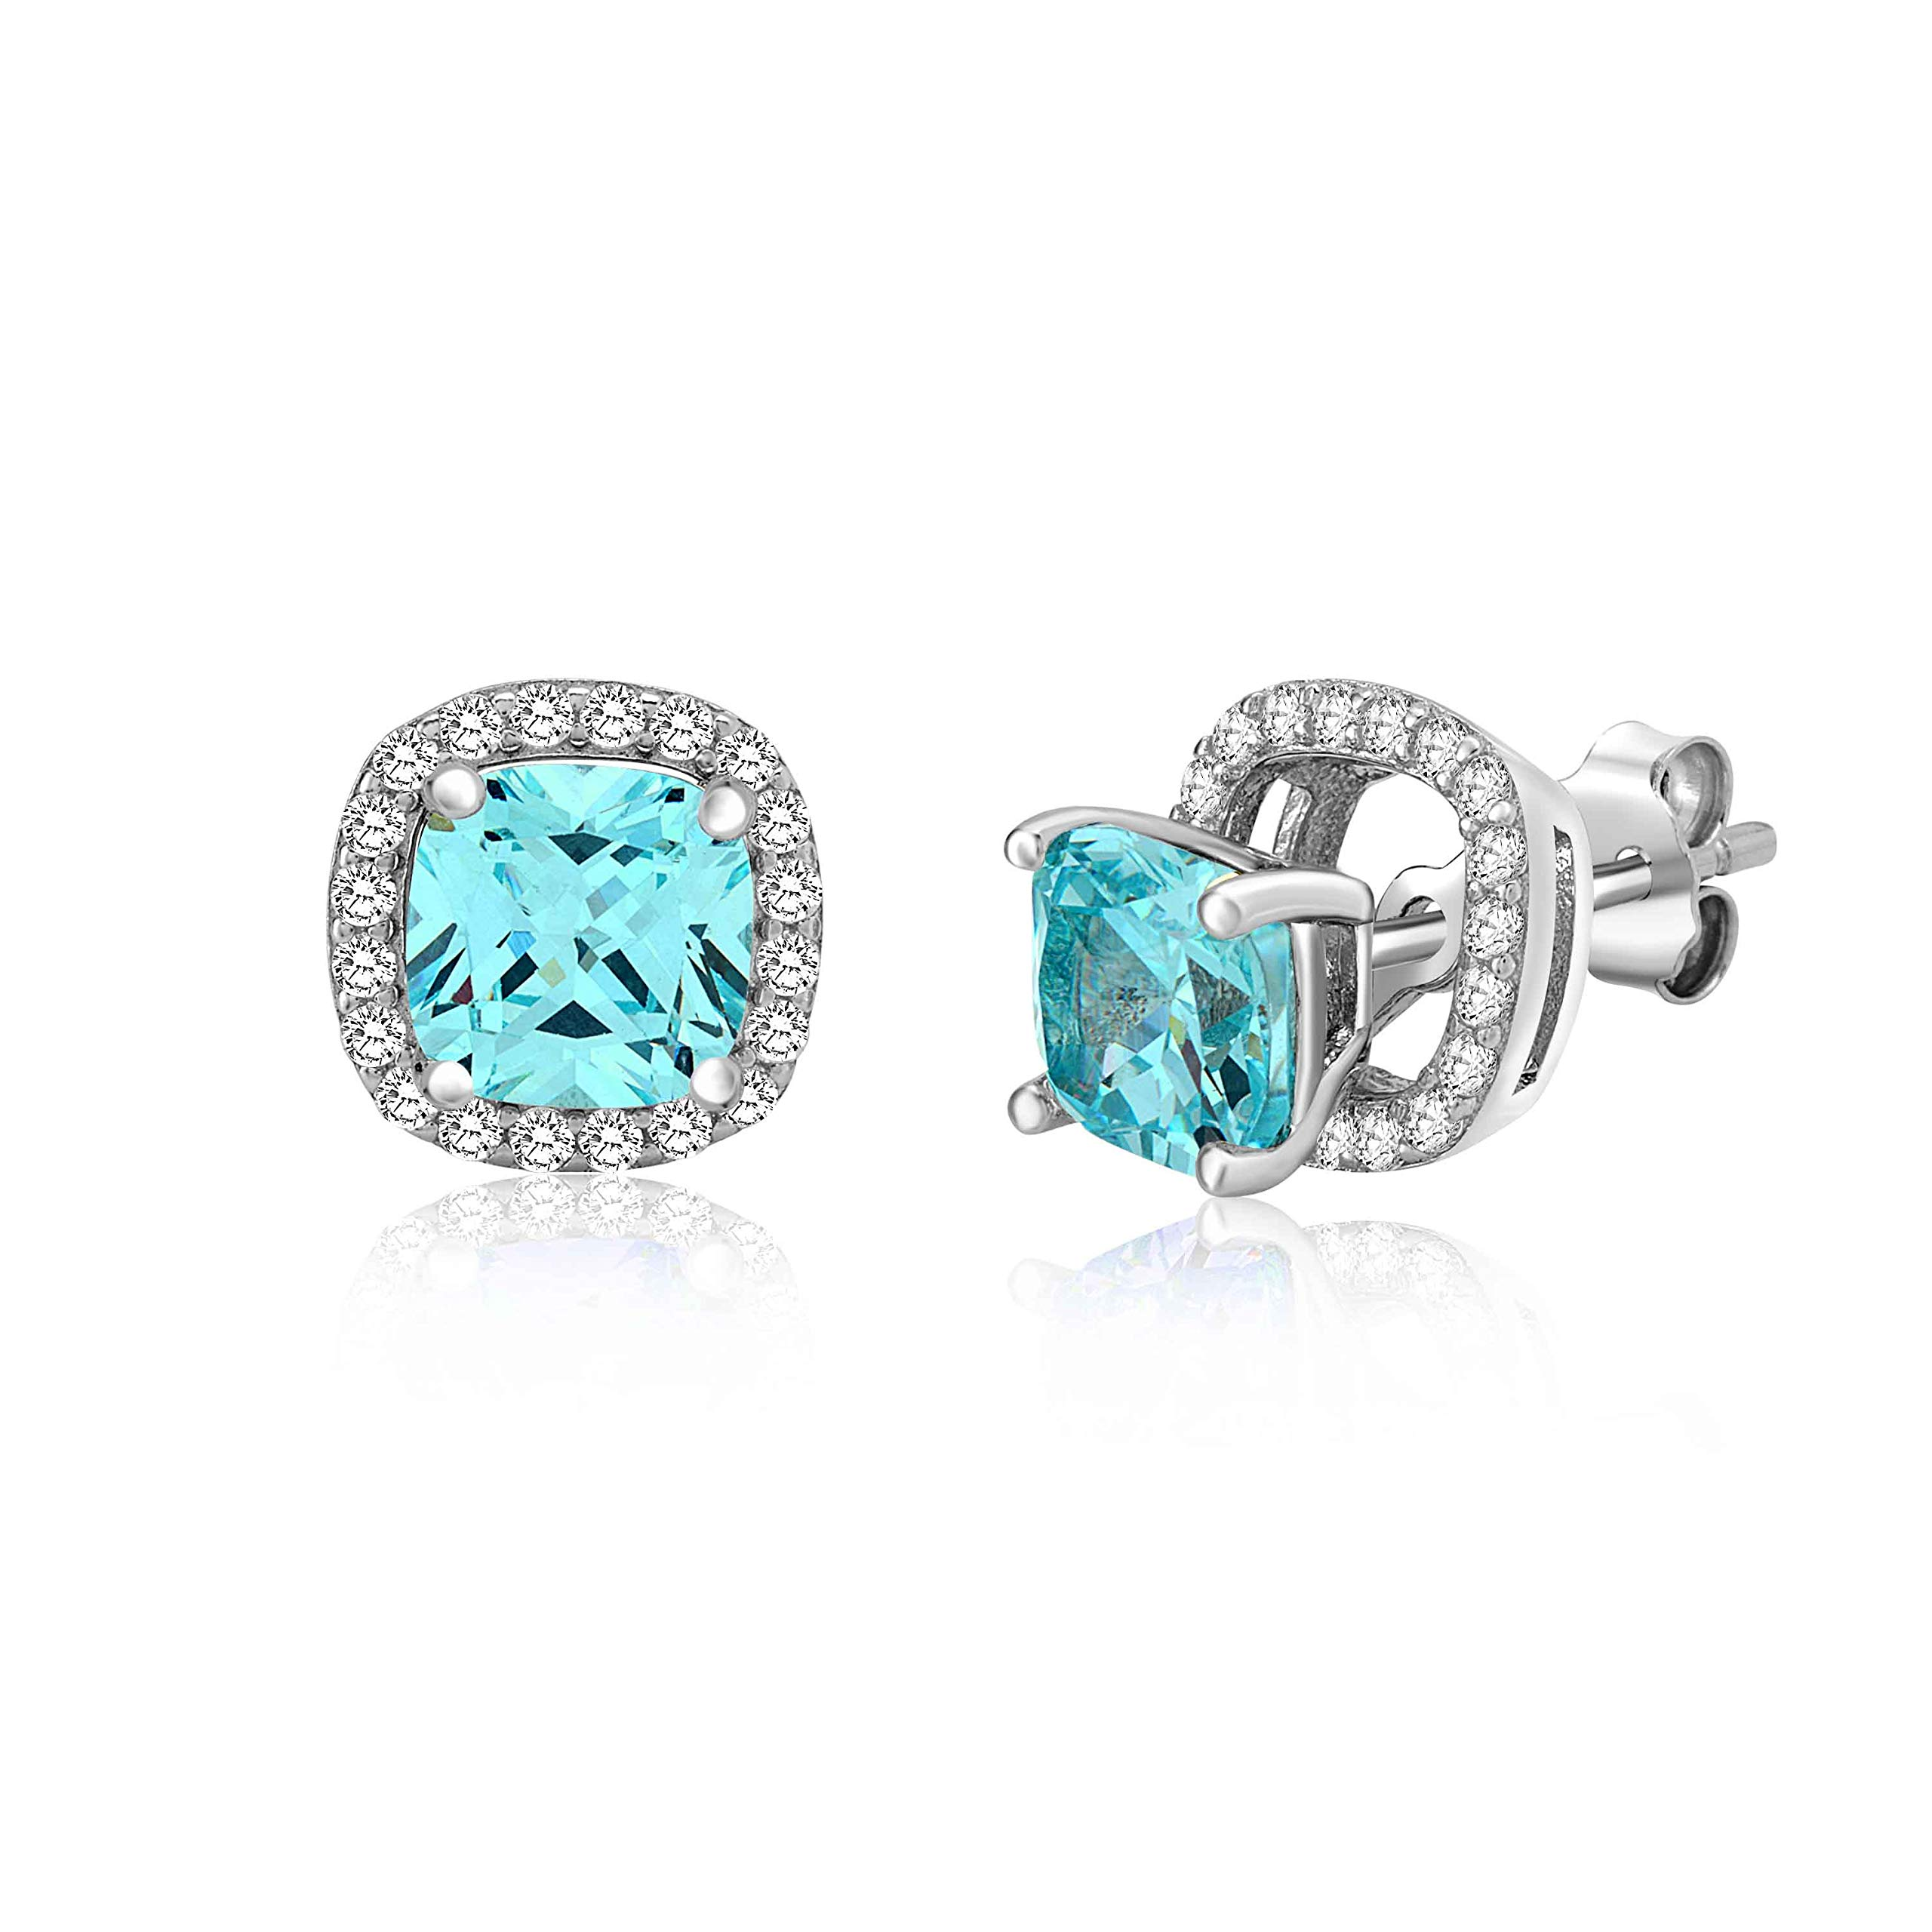 MASSETE Sterling Silver 925 Simulated Aquamarine Rounded Square Halo Stud Post Earrings with Removeable Jacket by Massete